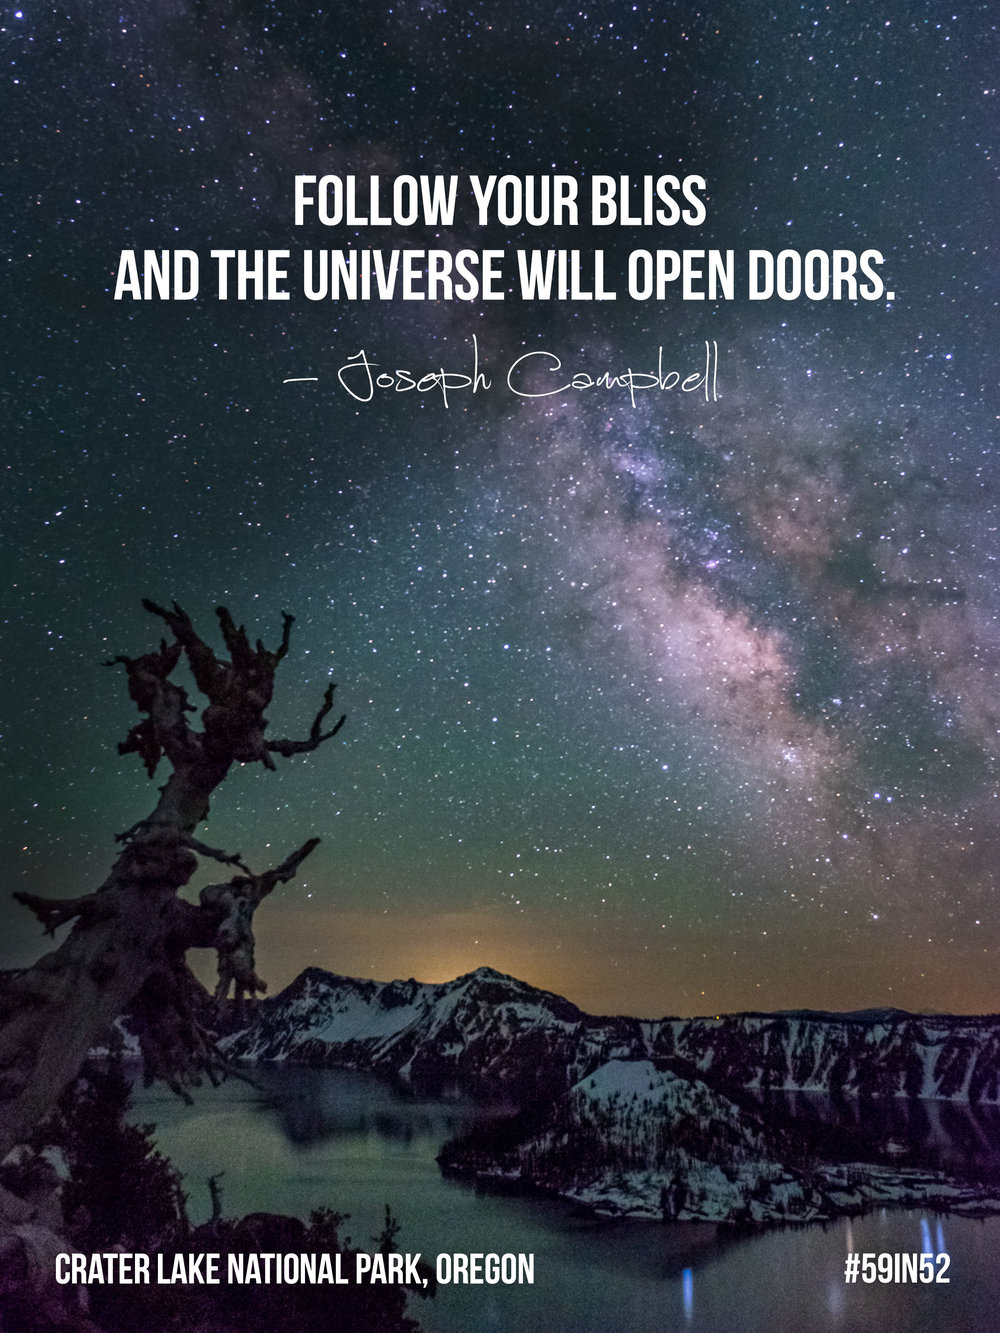 """Follow your bliss and the universe will open doors."" Joseph Campbell"